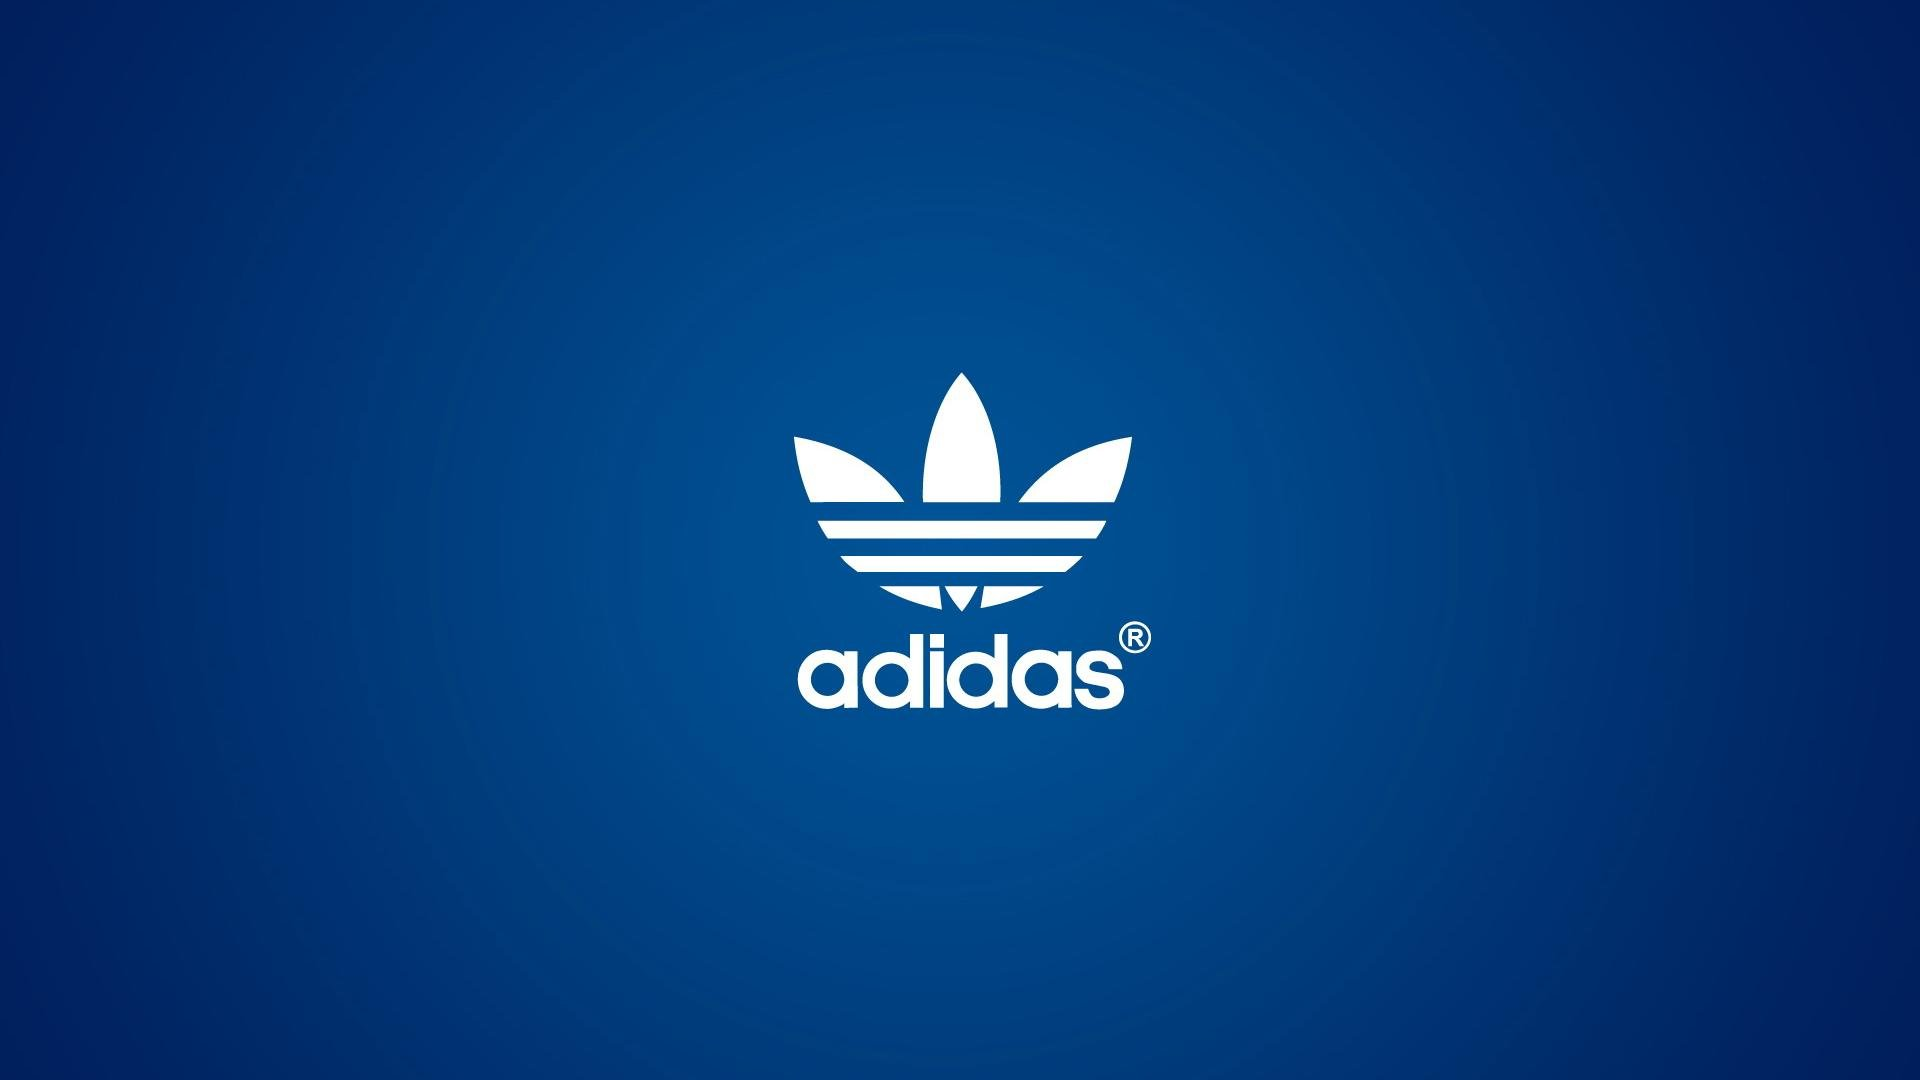 1920x1080 Adidas Brand Blue Backgrounds 1920x1080